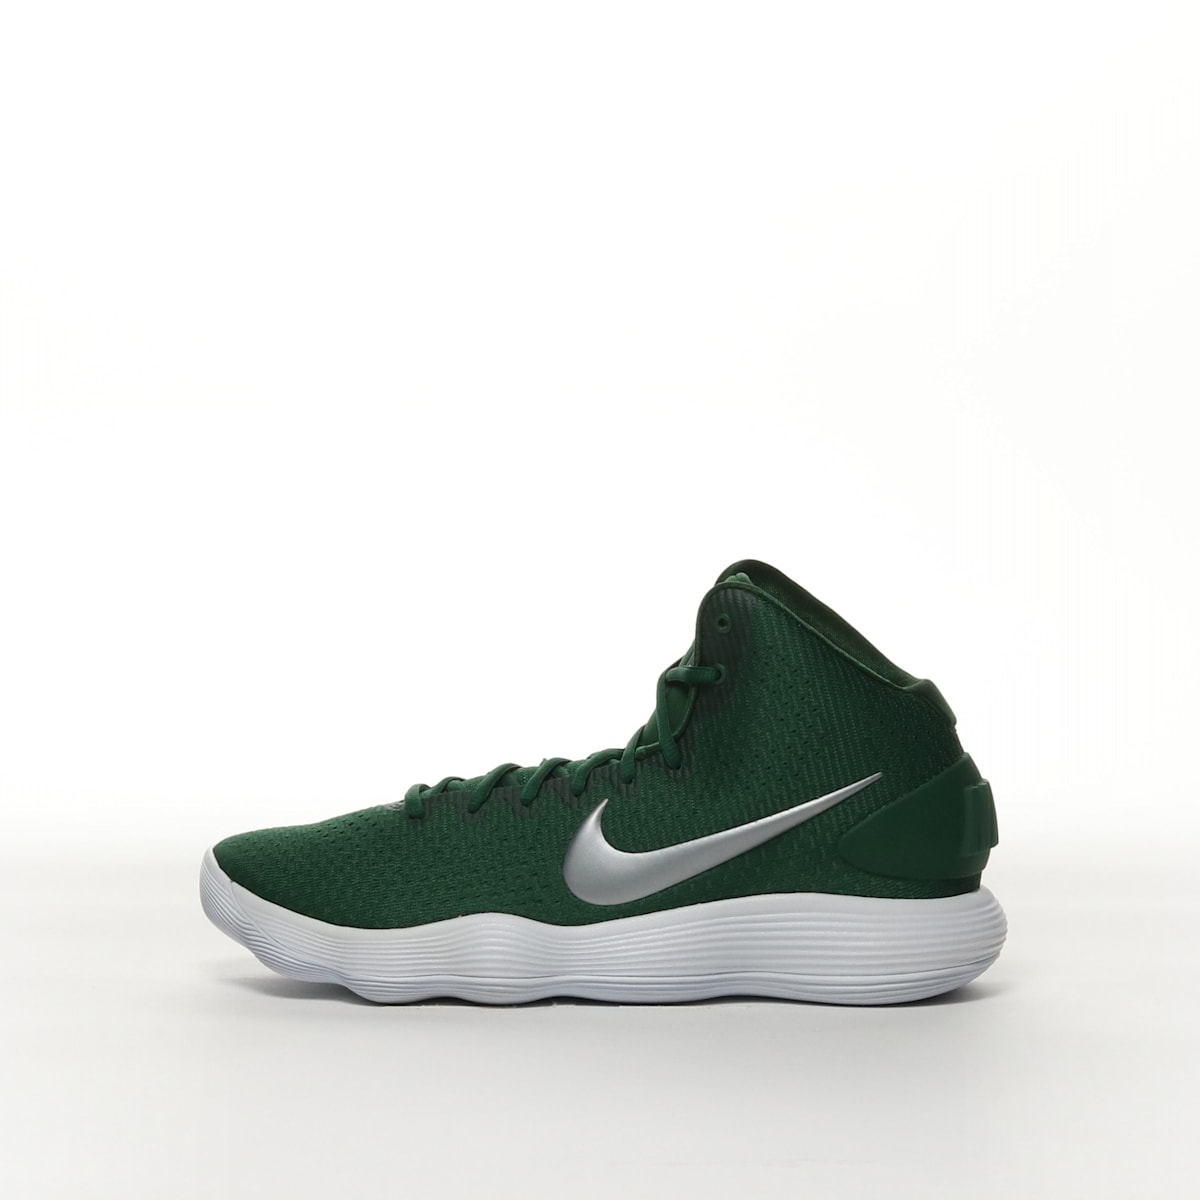 1d220e956384 Men s Nike Hyperdunk 2017 Team Basketball Shoe - GORGE GREEN METALLIC –  Resku